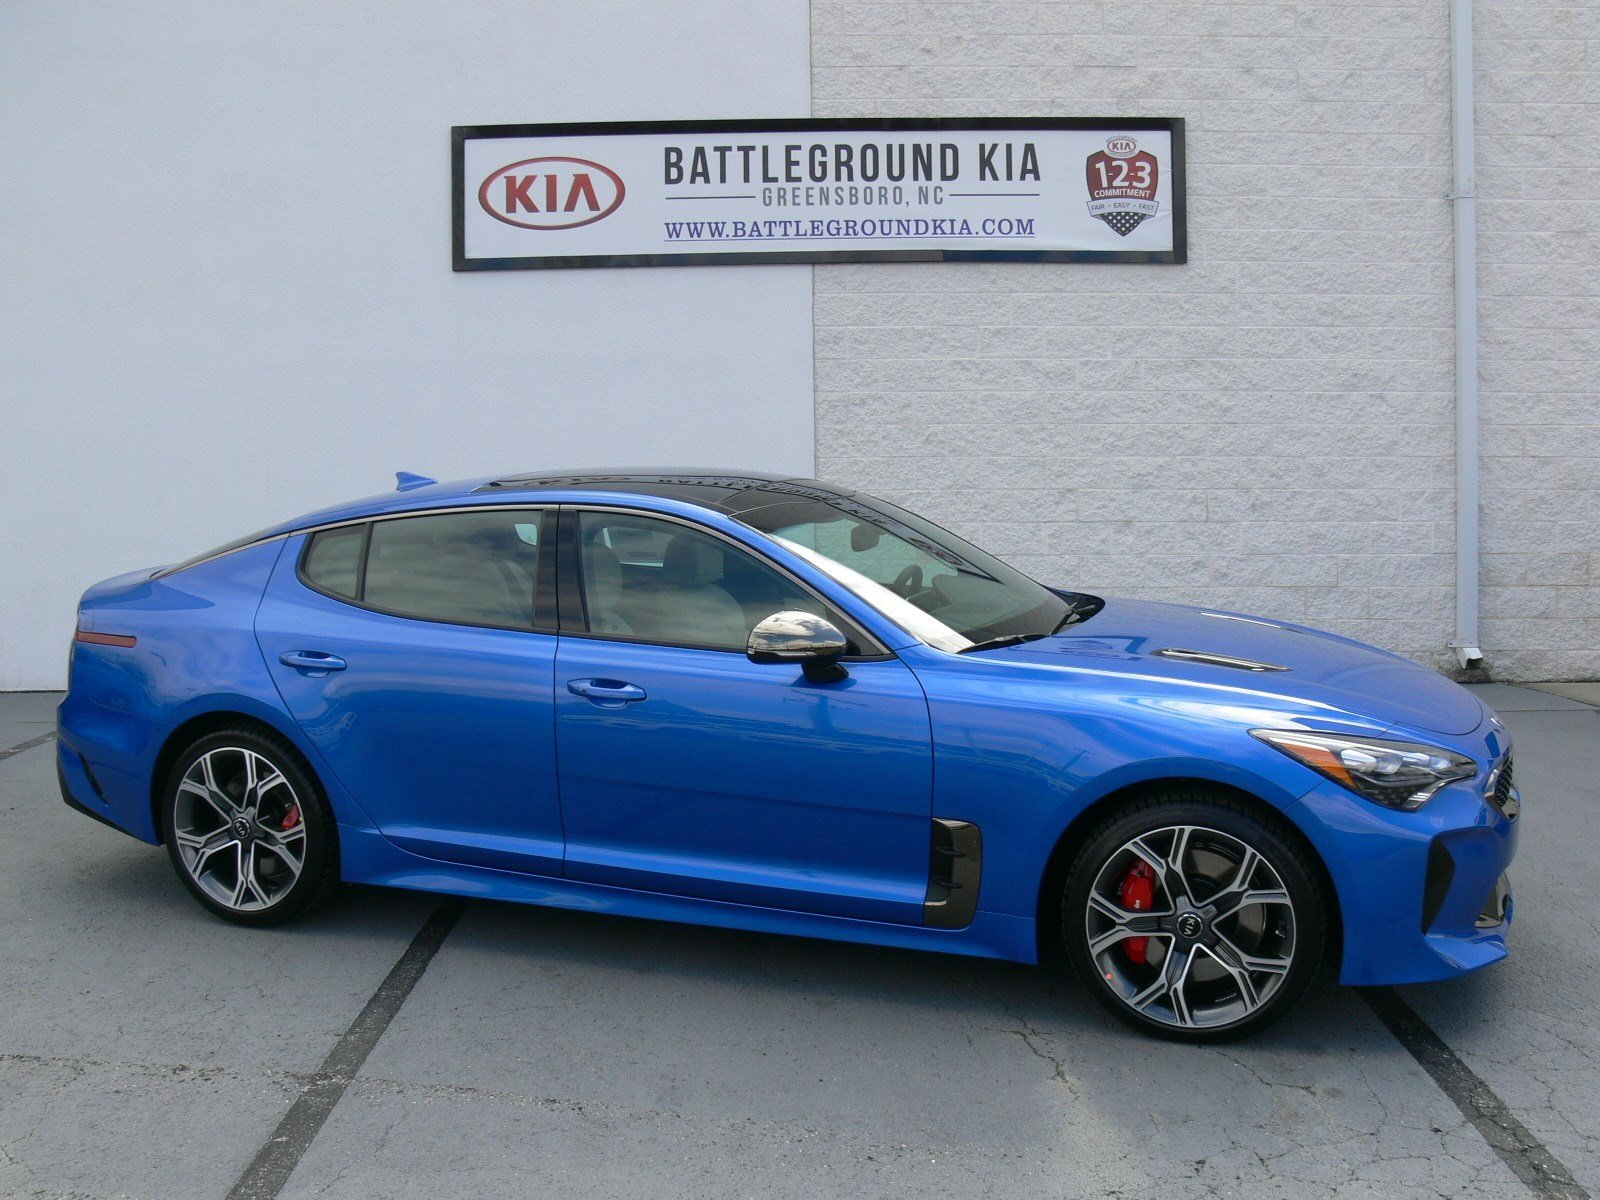 New 2018 Kia Stinger Gt2 4dr Car In Greensboro 18321 Battleground 2009 Optima Navigation System Components And Wiring Harness